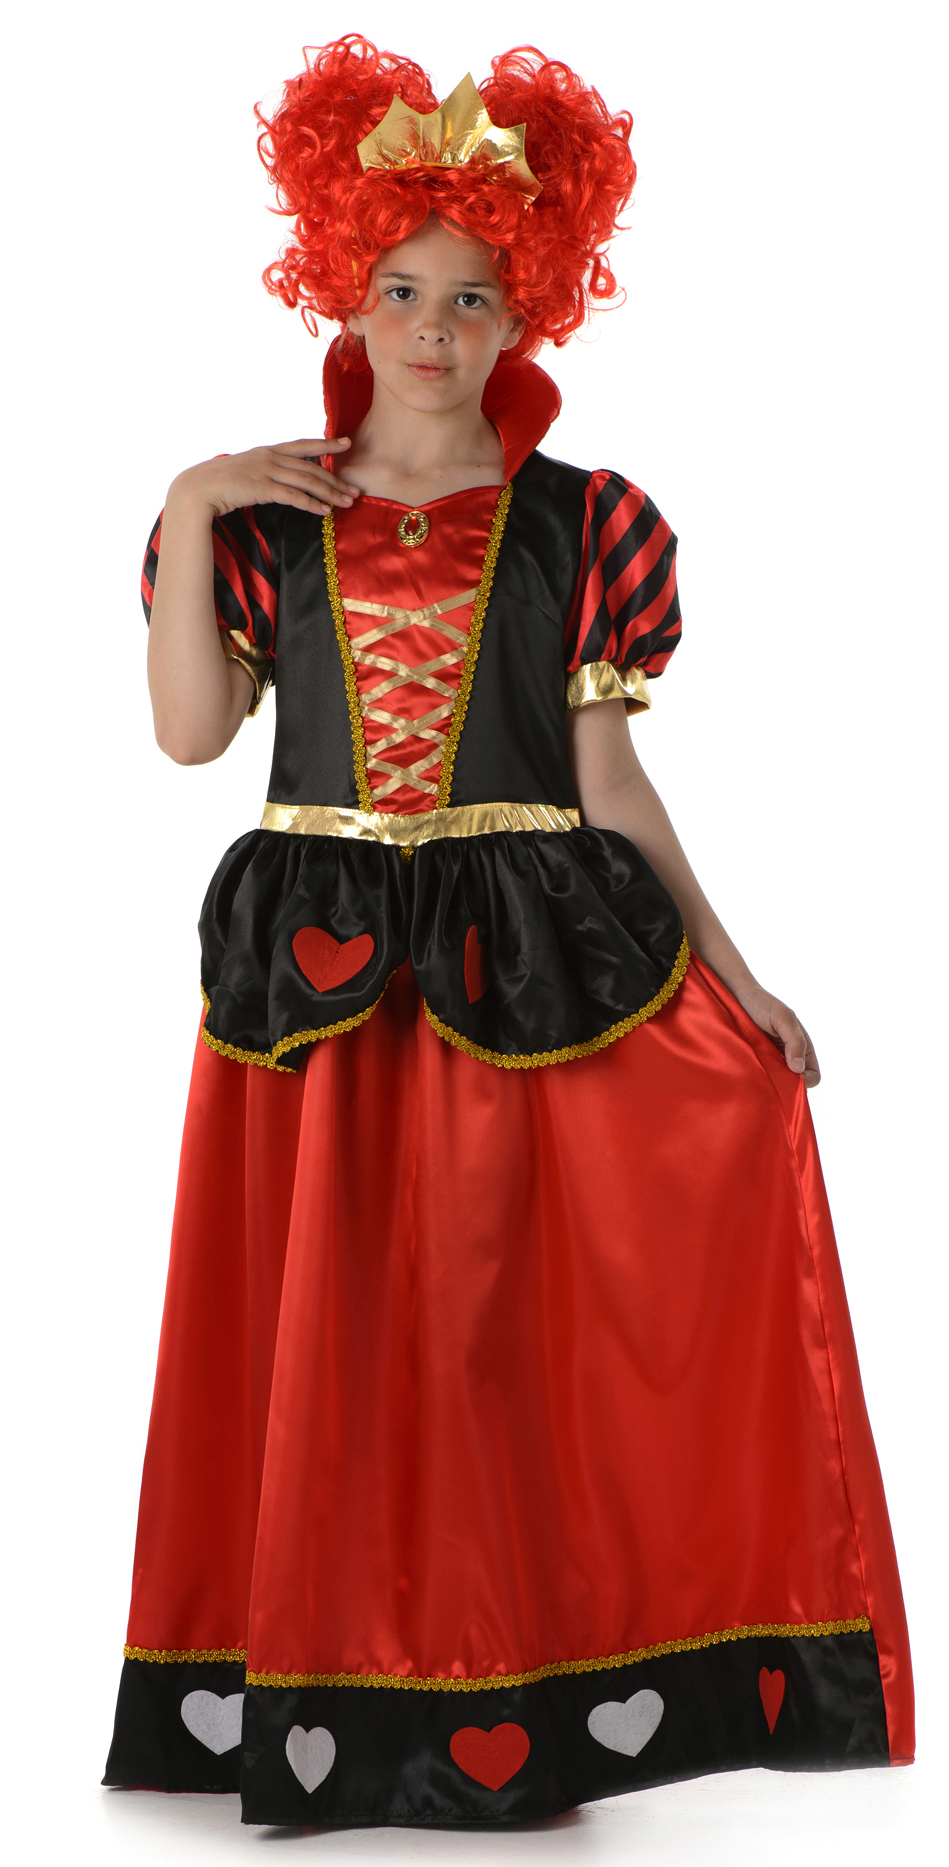 Girl Kid Princess Costume Christmas Cosplay Party Fancy Dress Fairytale Book Day